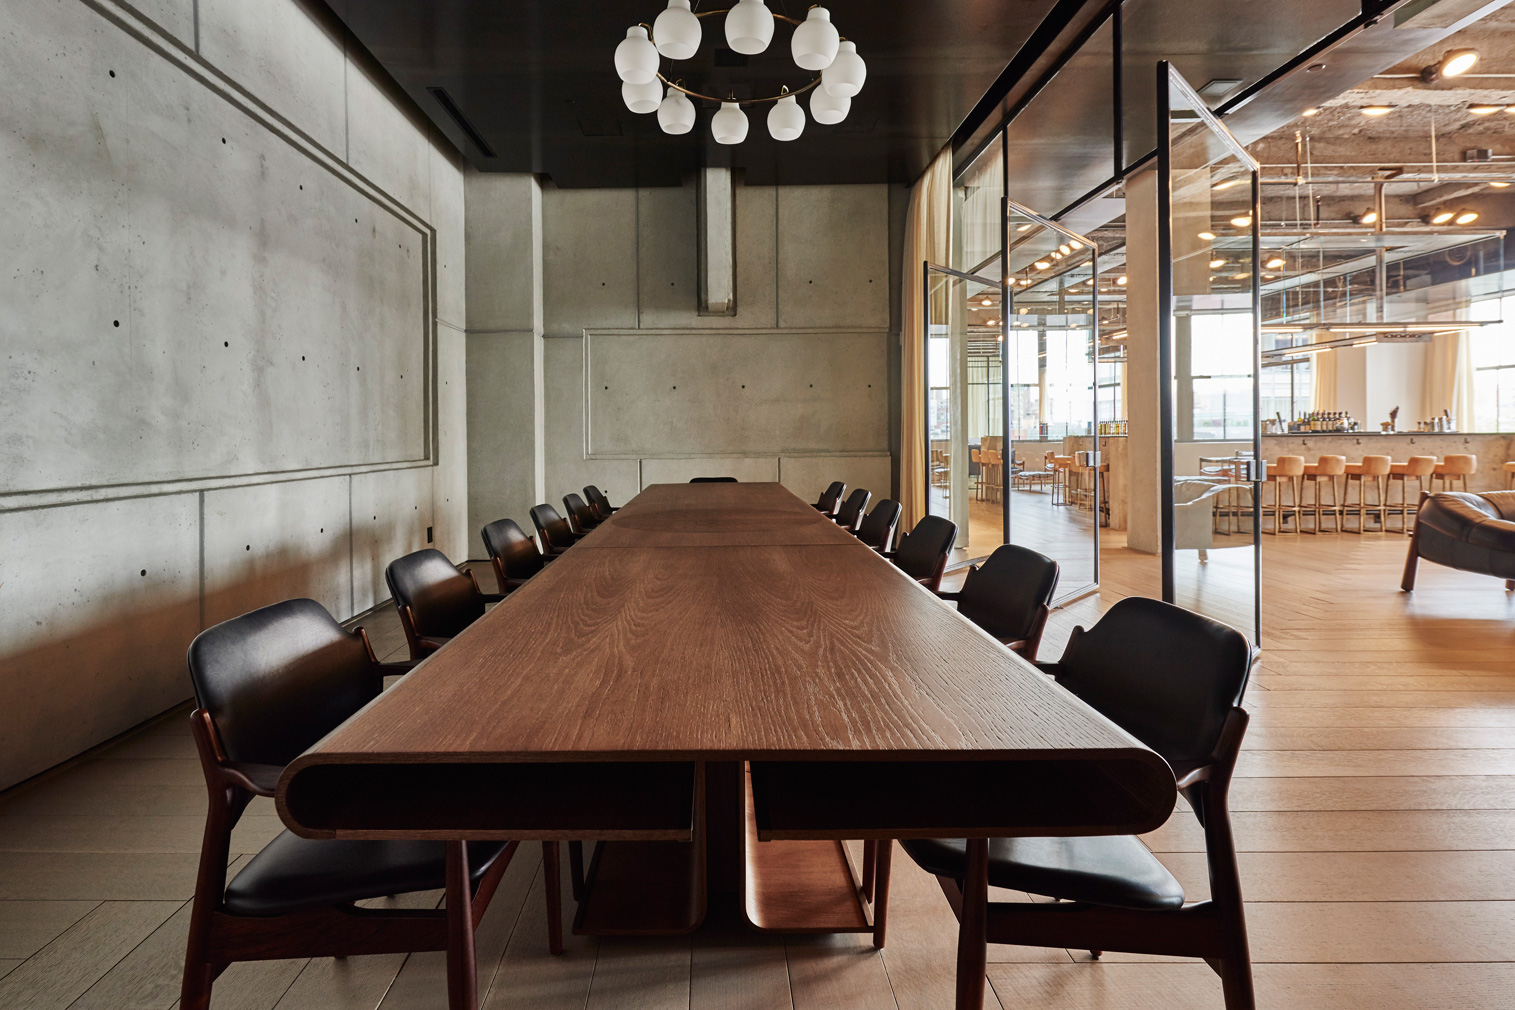 Spring Opens A New Members Club And Workspace In New York